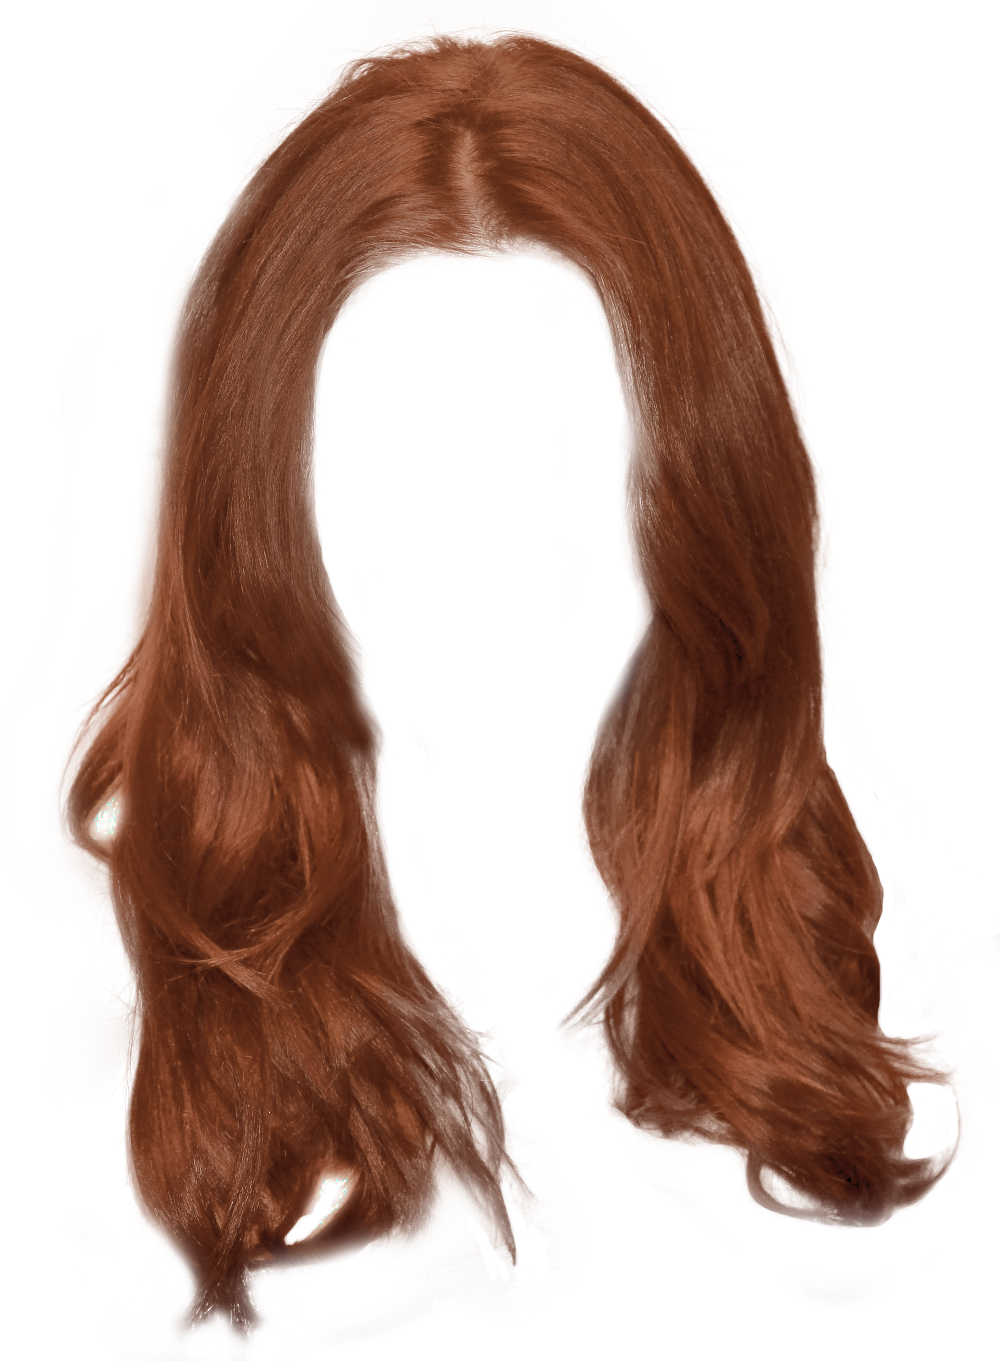 Hair clipart real Icons and Backgrounds #26043 Free